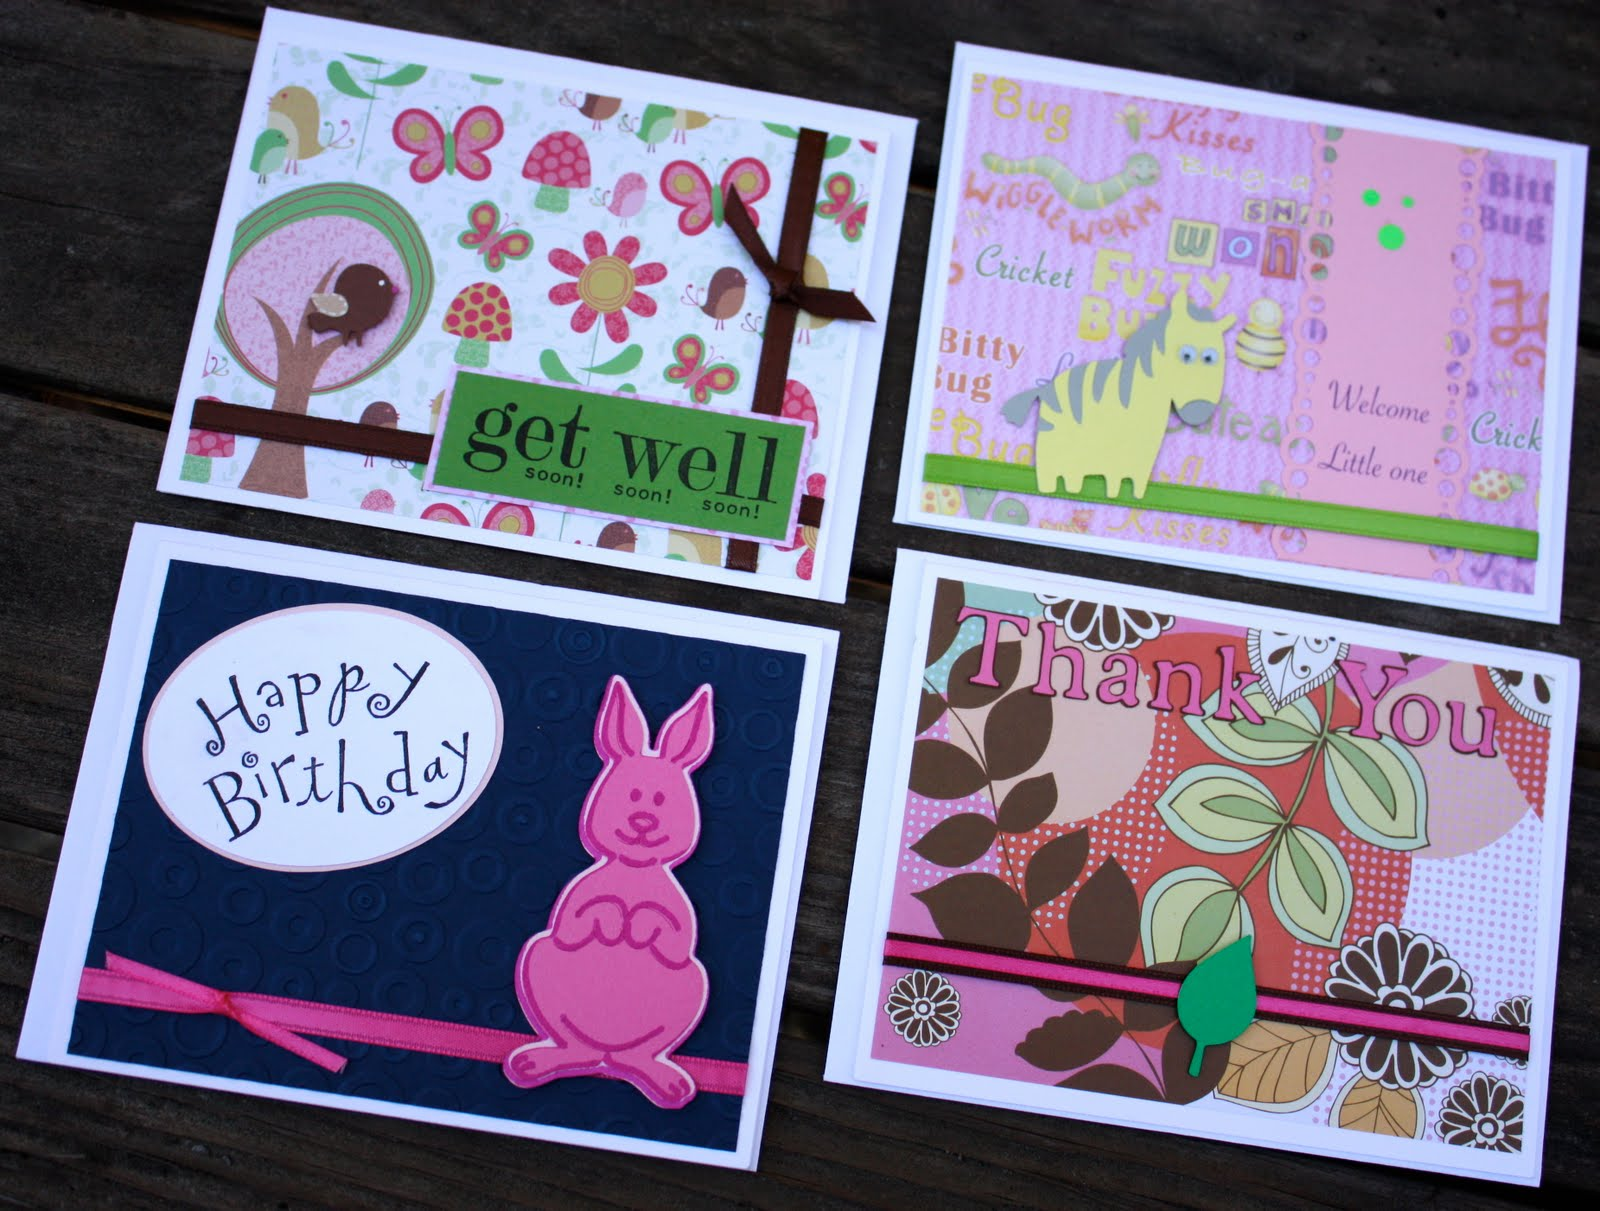 All set win funky cards in reader raffle wasnt admirable enough madison has created a special line of greeting cards that generates donation dollars for the american cancer society andor the m4hsunfo